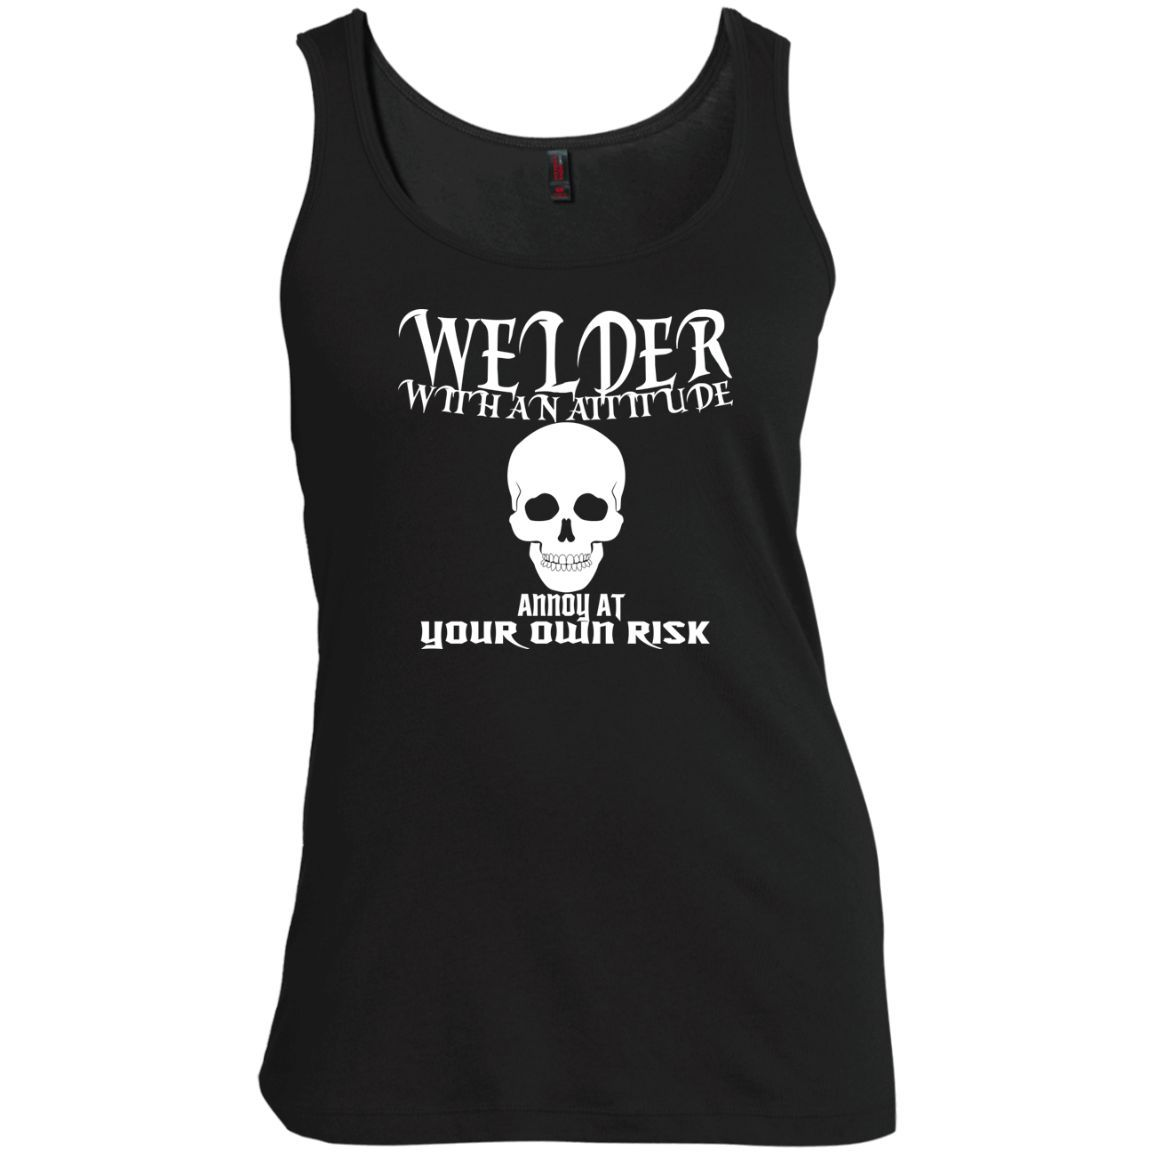 Welder With An Attitude Annoy At Your Own Risk Scoop Neck Tanks